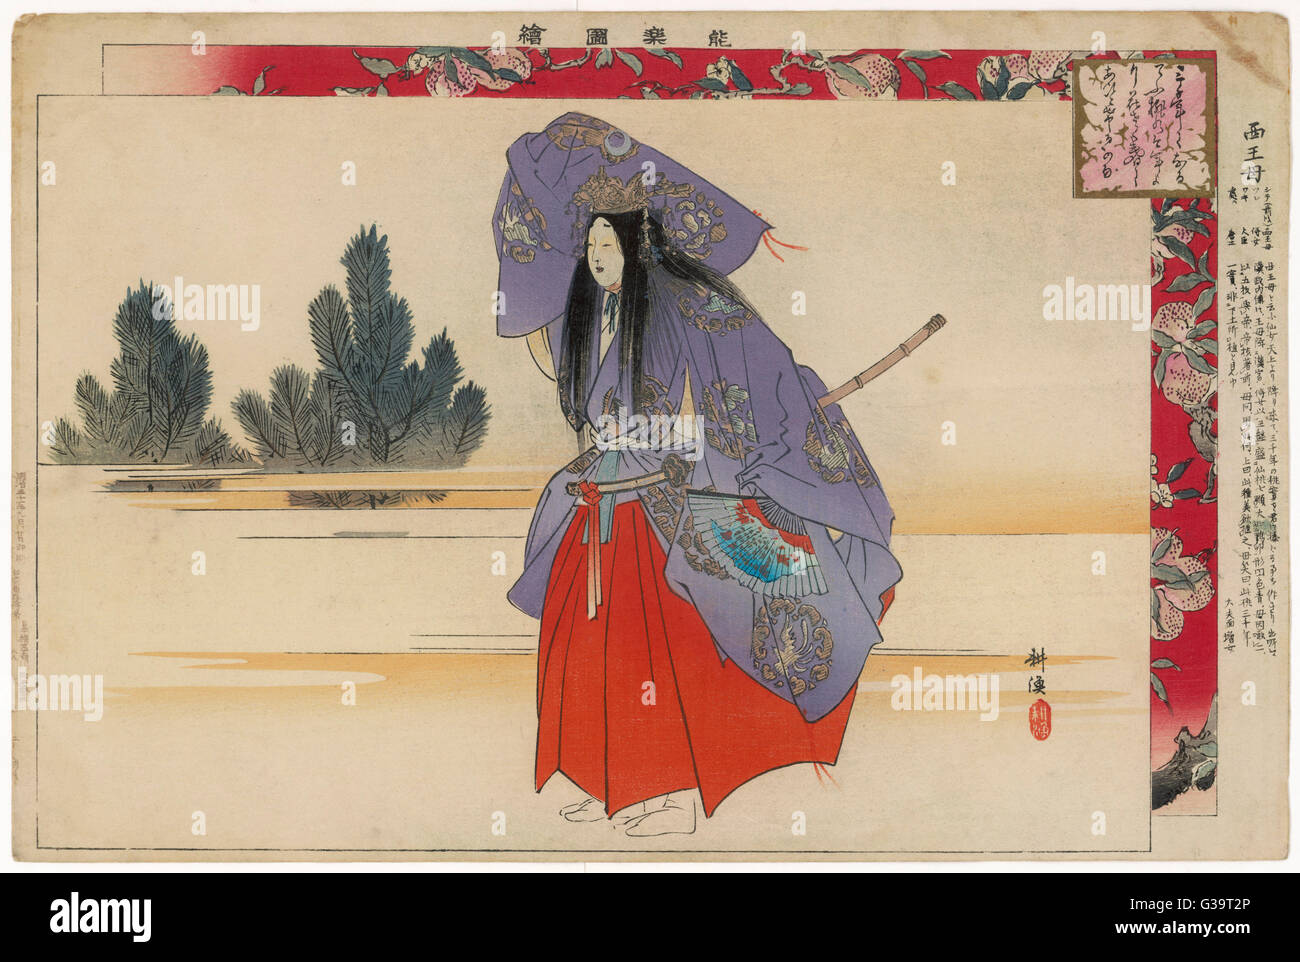 A scene from a Kabuki play.          Date: 19th century - Stock Image